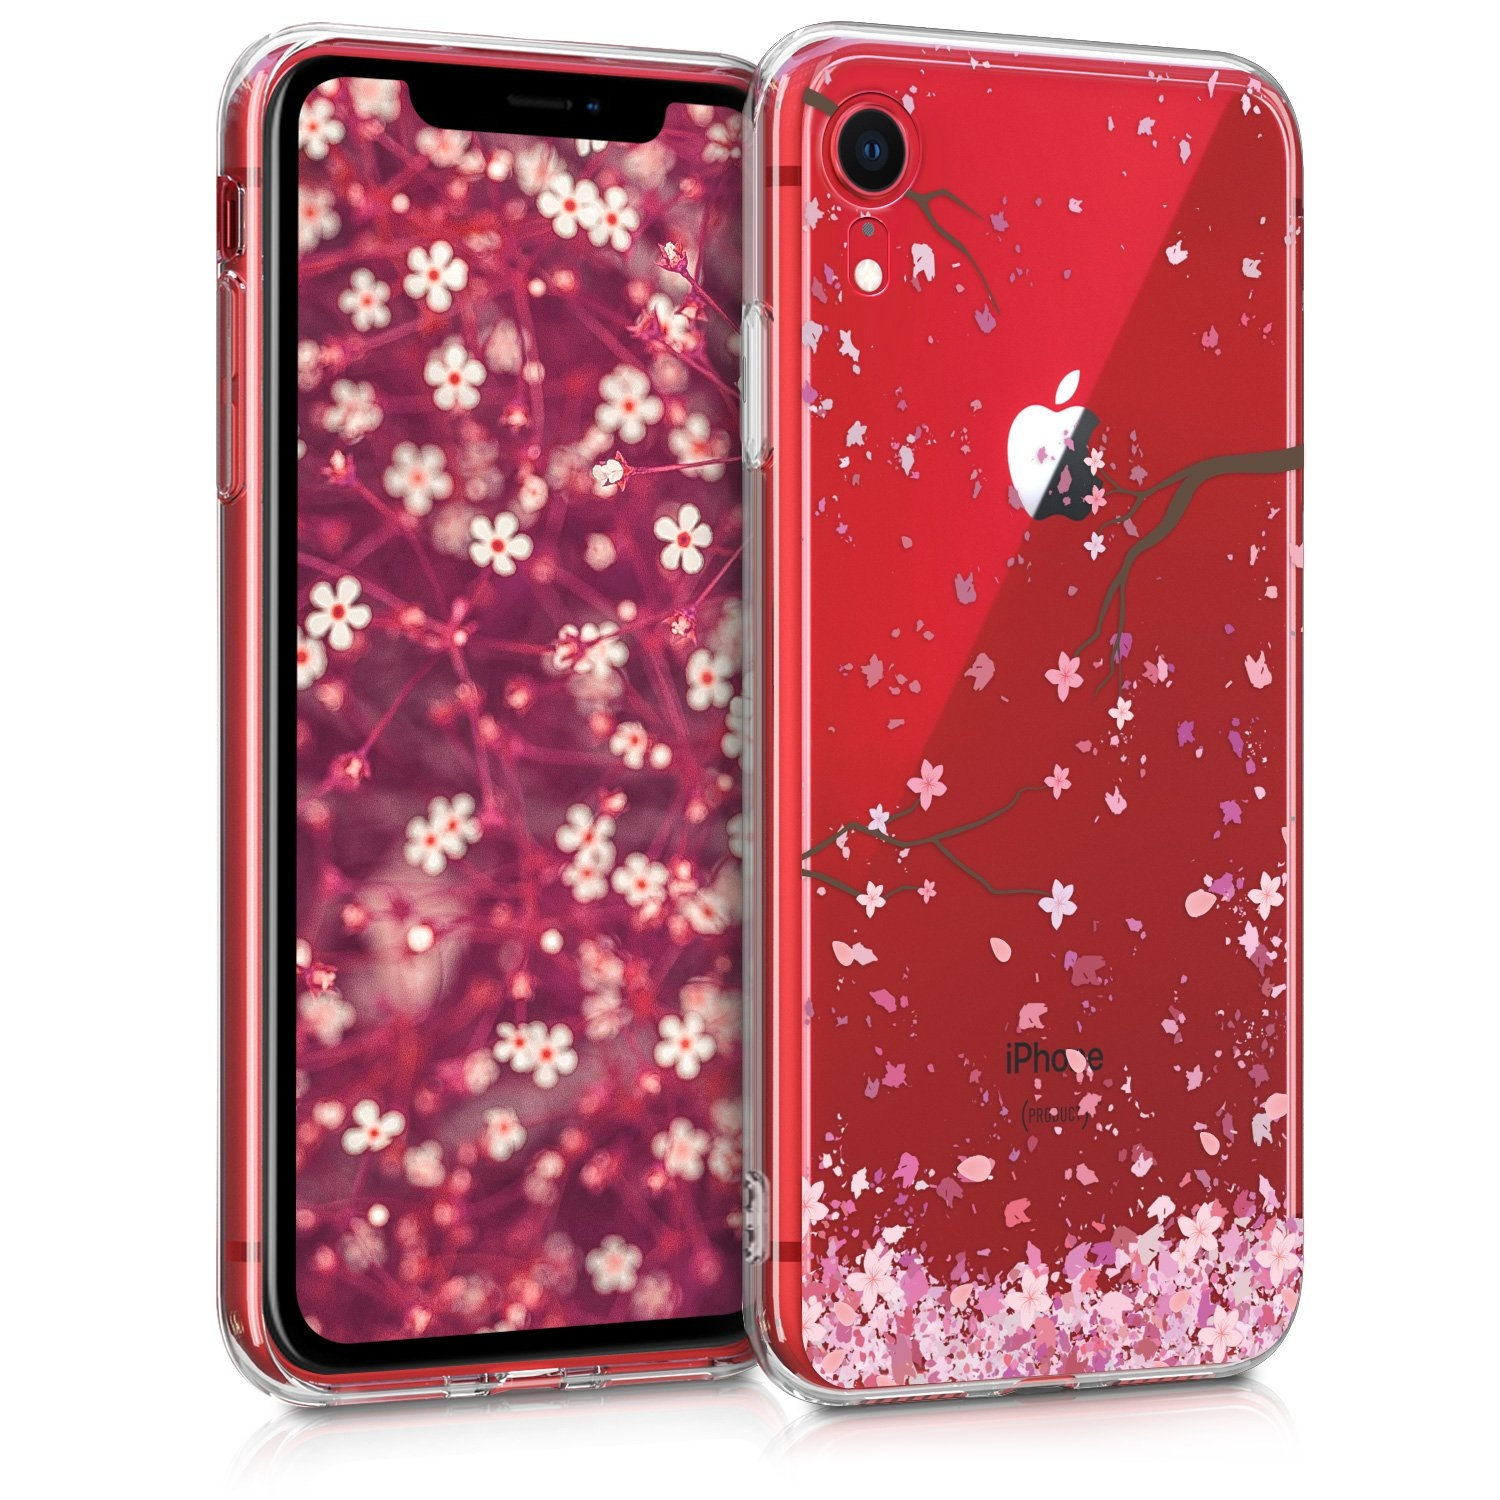 KW Θήκη Σιλικόνης Apple iPhone XR - Light Pink / Dark Brown / Transparent (45915.22)